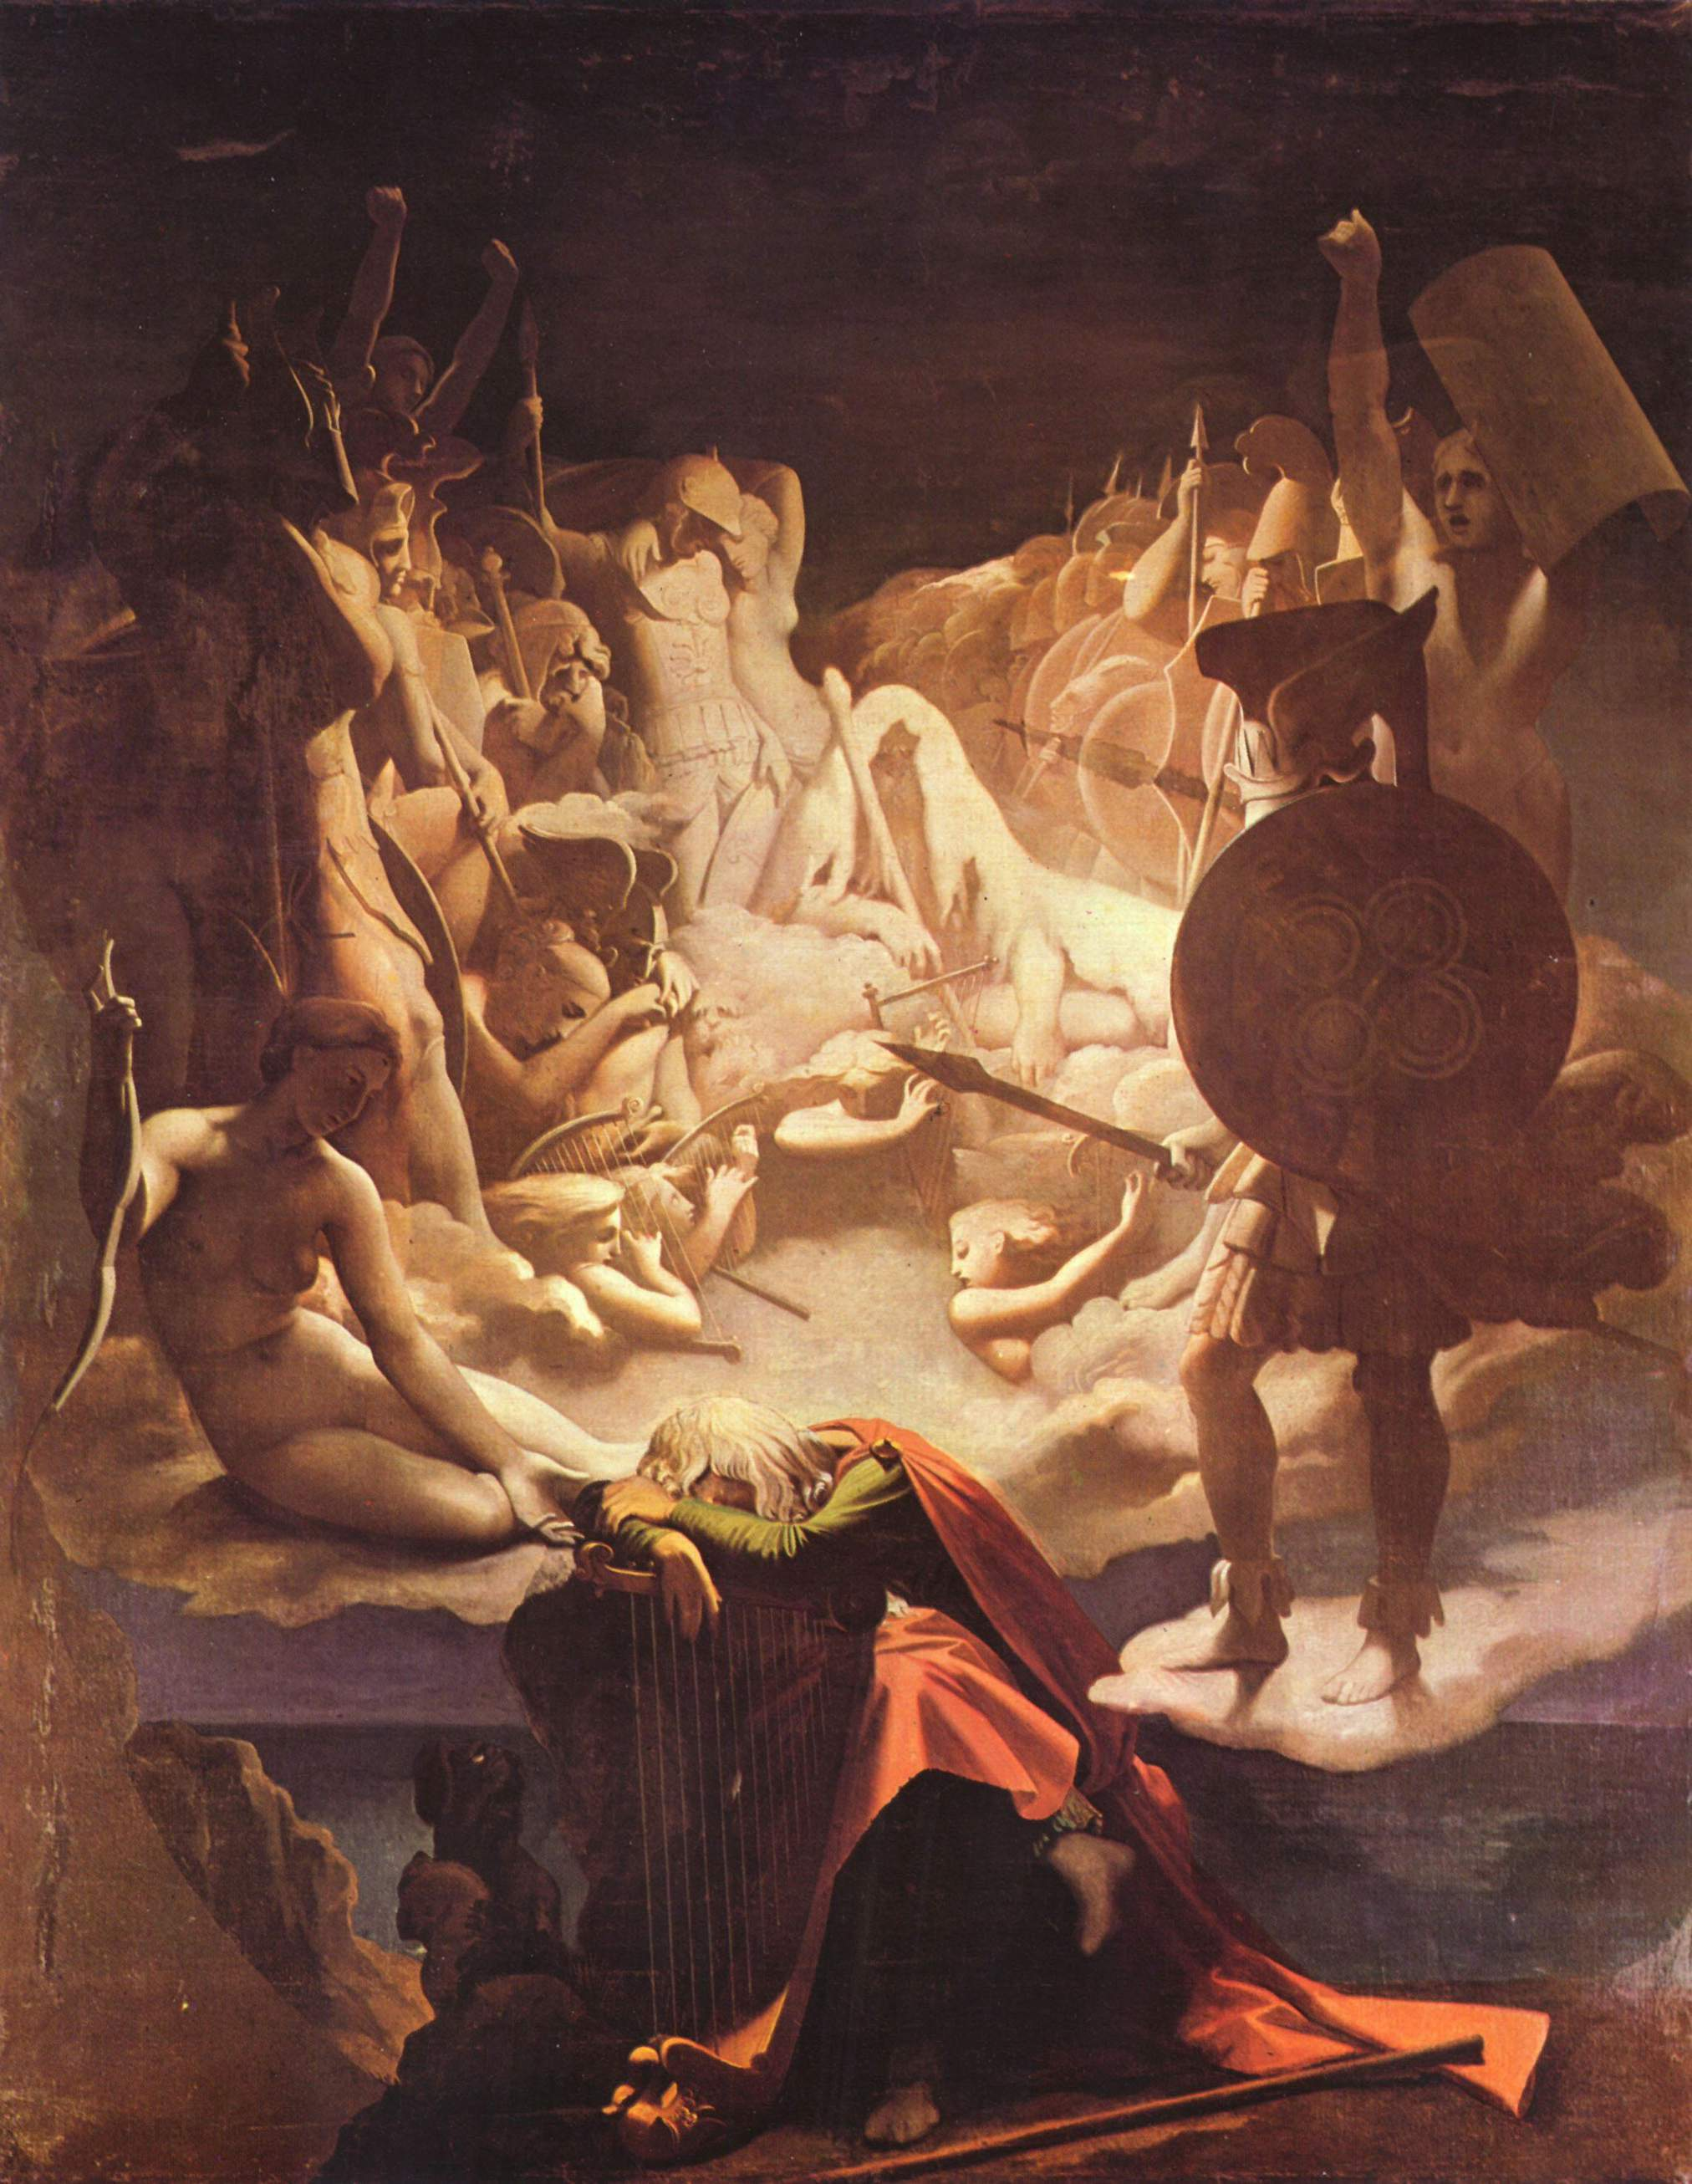 The Dream of Ossian, 1813